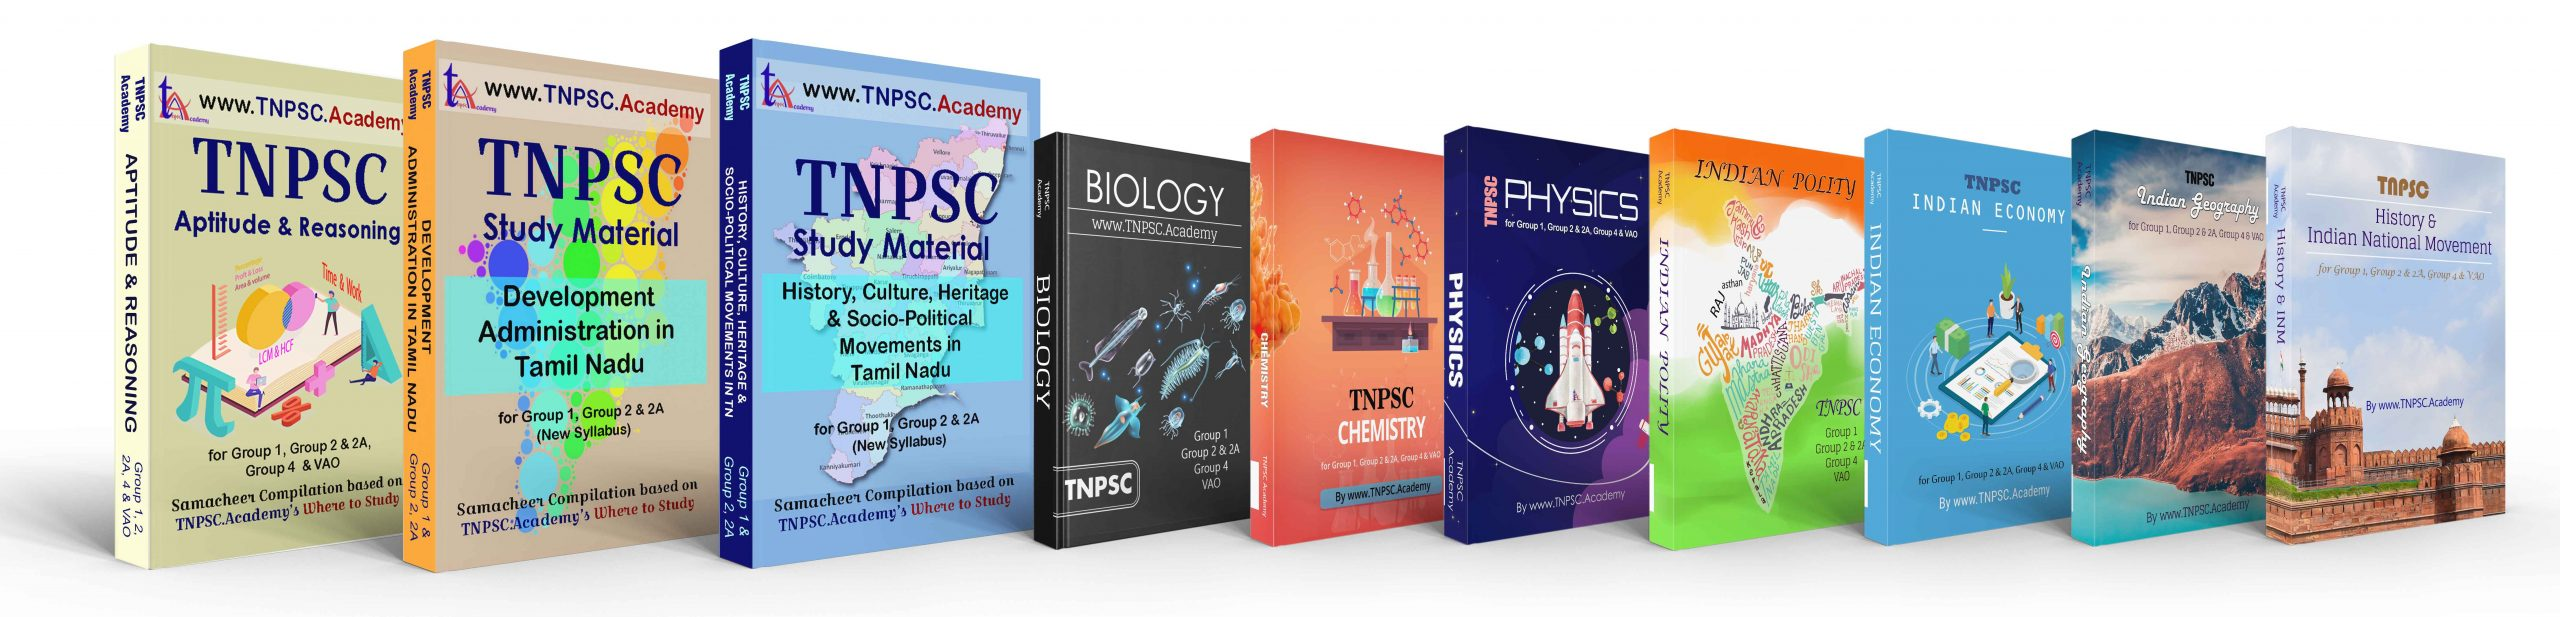 All TNPSC Books